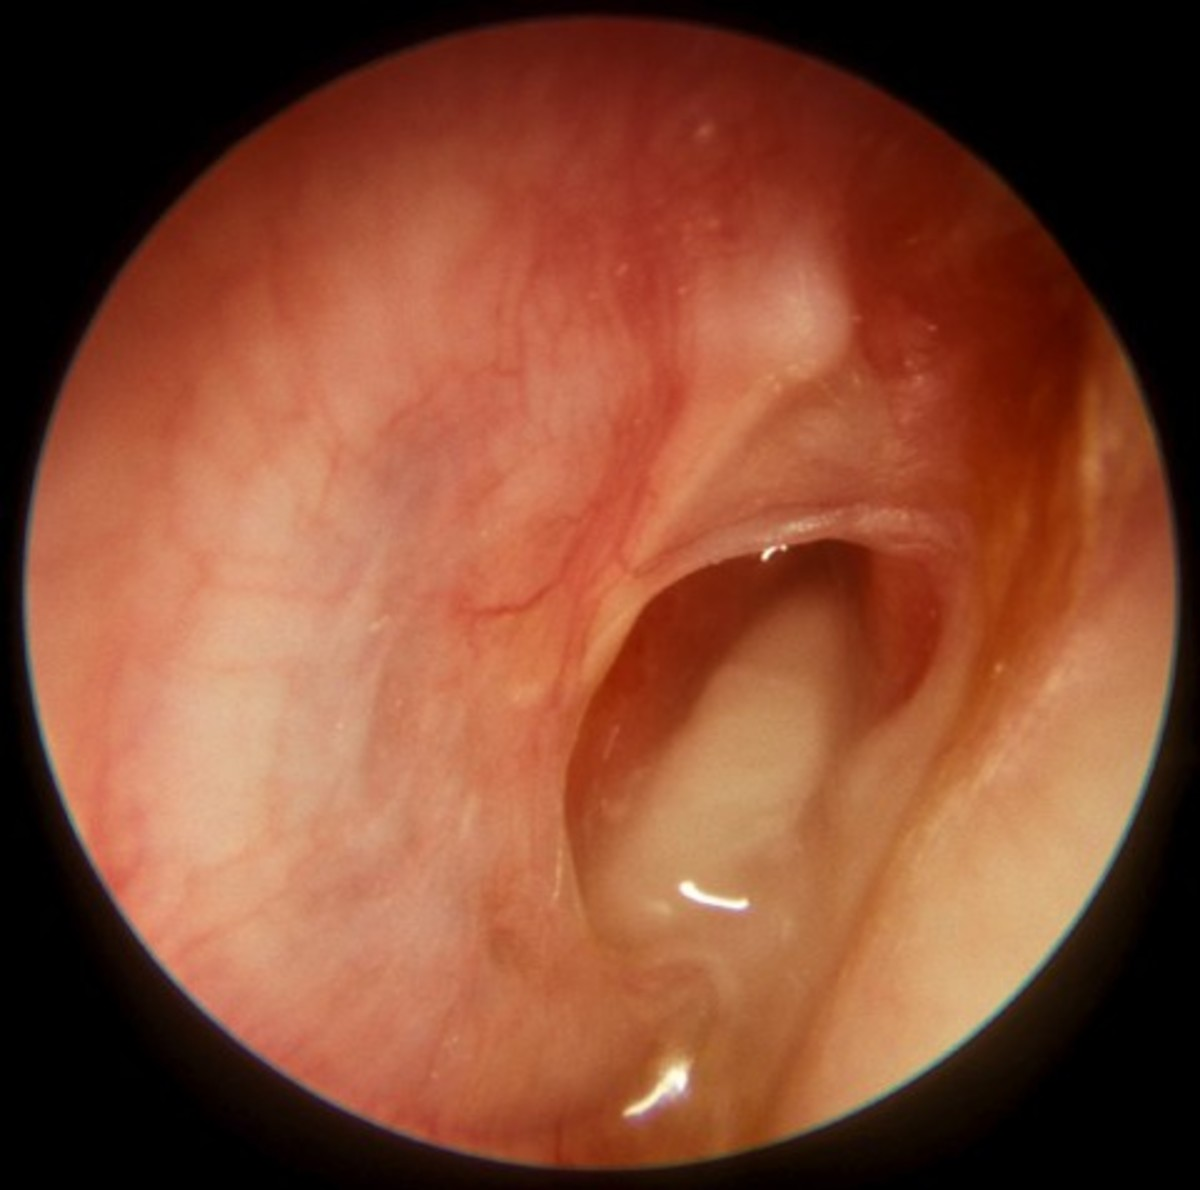 Inner Ear Infection - Symptoms, Causes, Treatment, Pictures